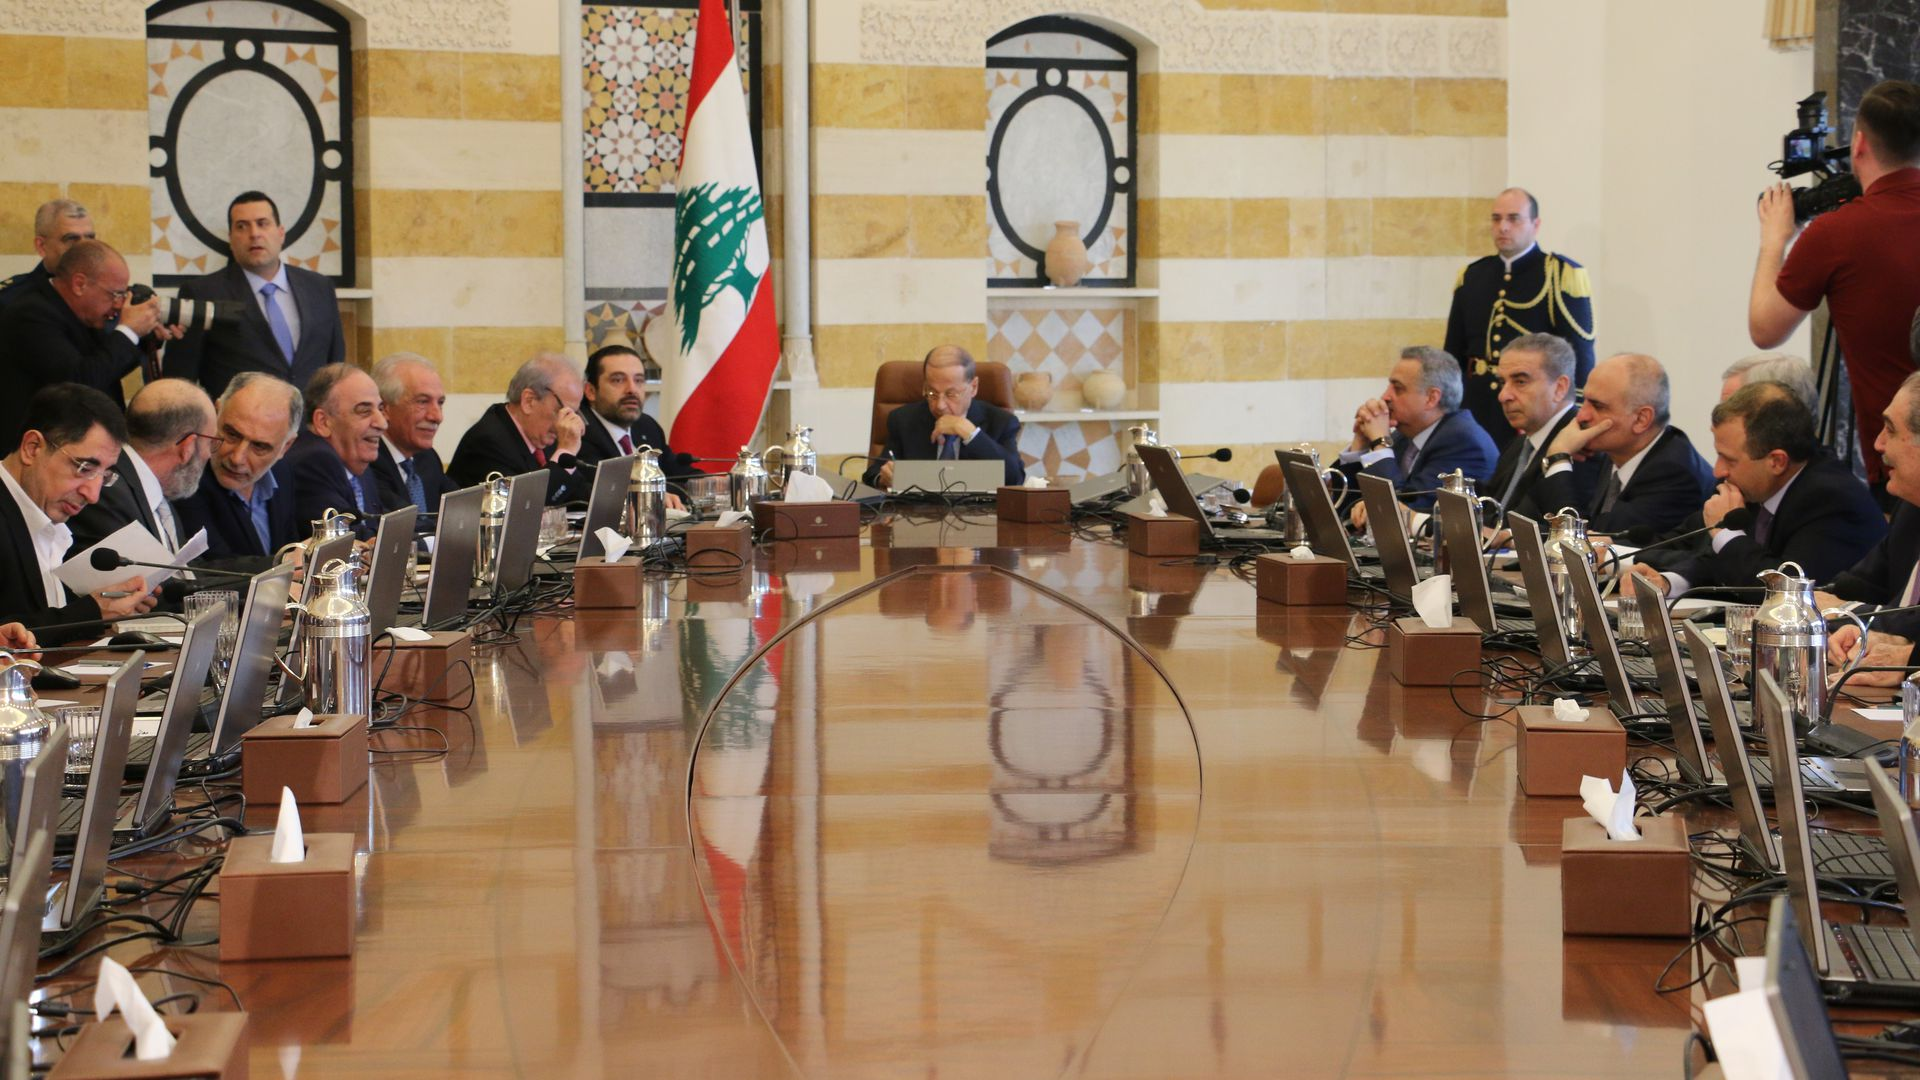 Lebanese President Michel Aoun and Prime Minister Saad Hariri attend a cabinet meeting.